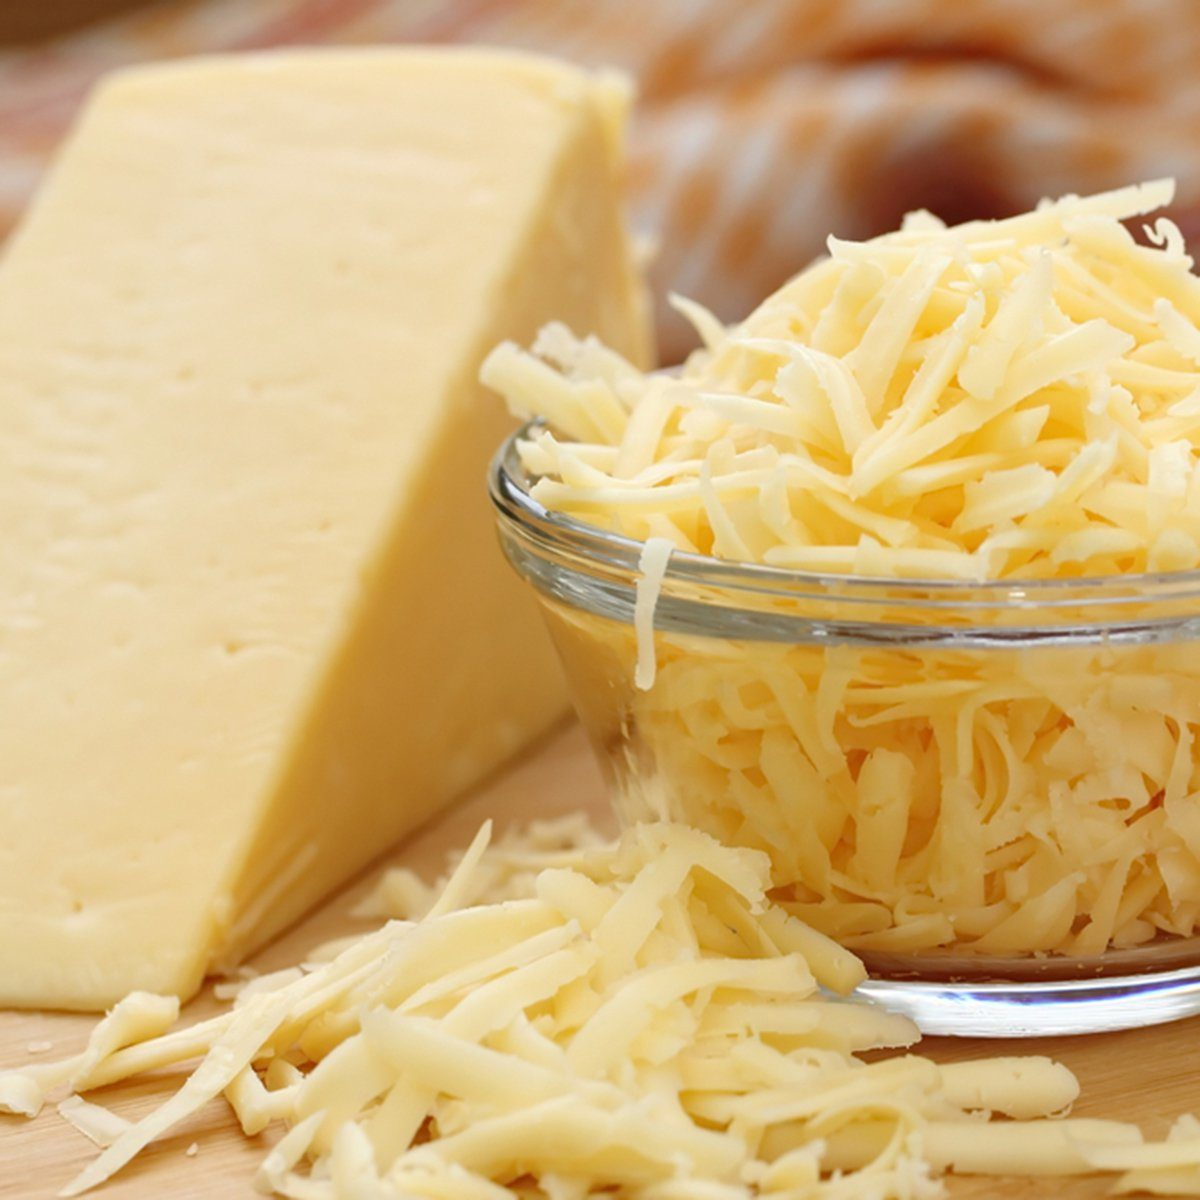 Grated cheese in a glass bowl; Shutterstock ID 365625941; Job (TFH, TOH, RD, BNB, CWM, CM): TOH